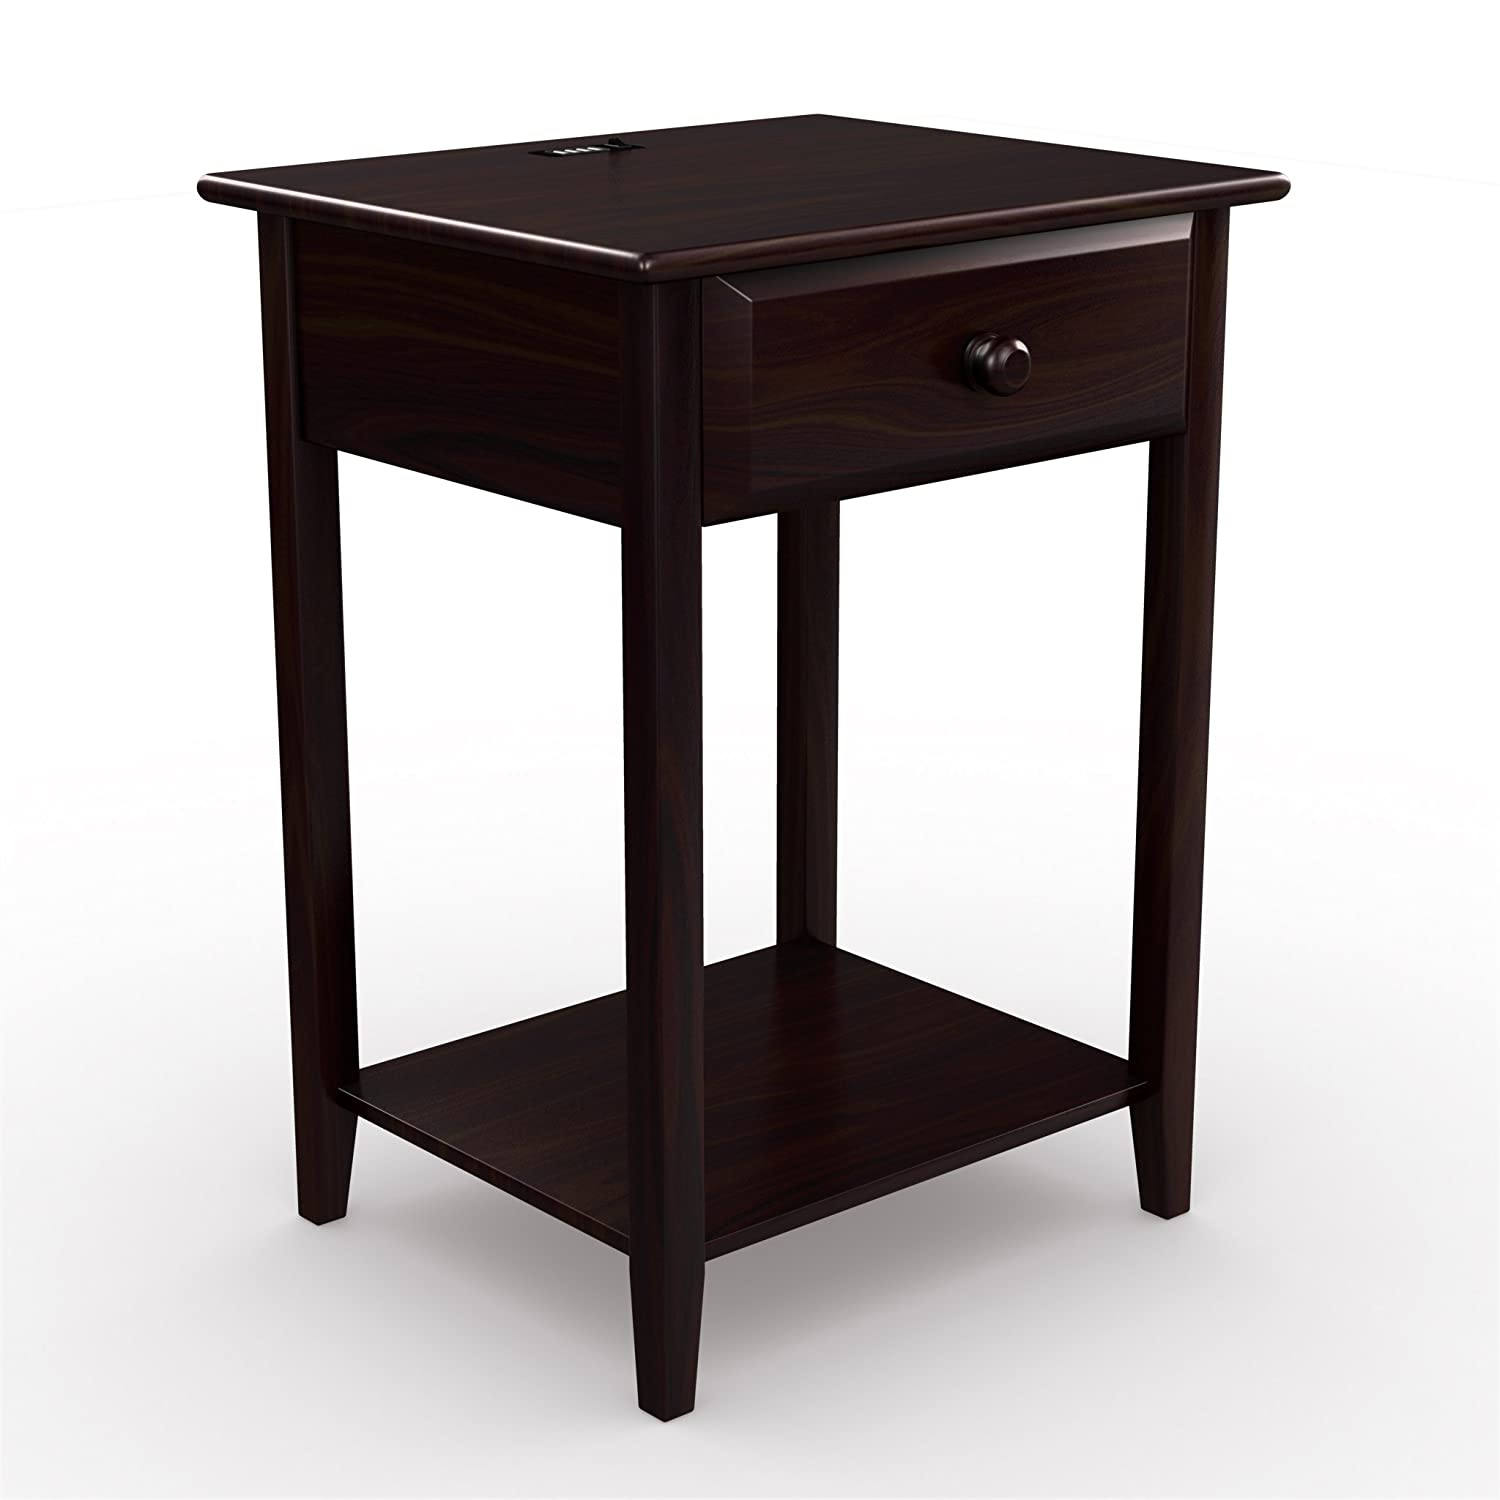 Amazon.com: Stony-Edge Night Stand End Accent Table, with USB Port ...